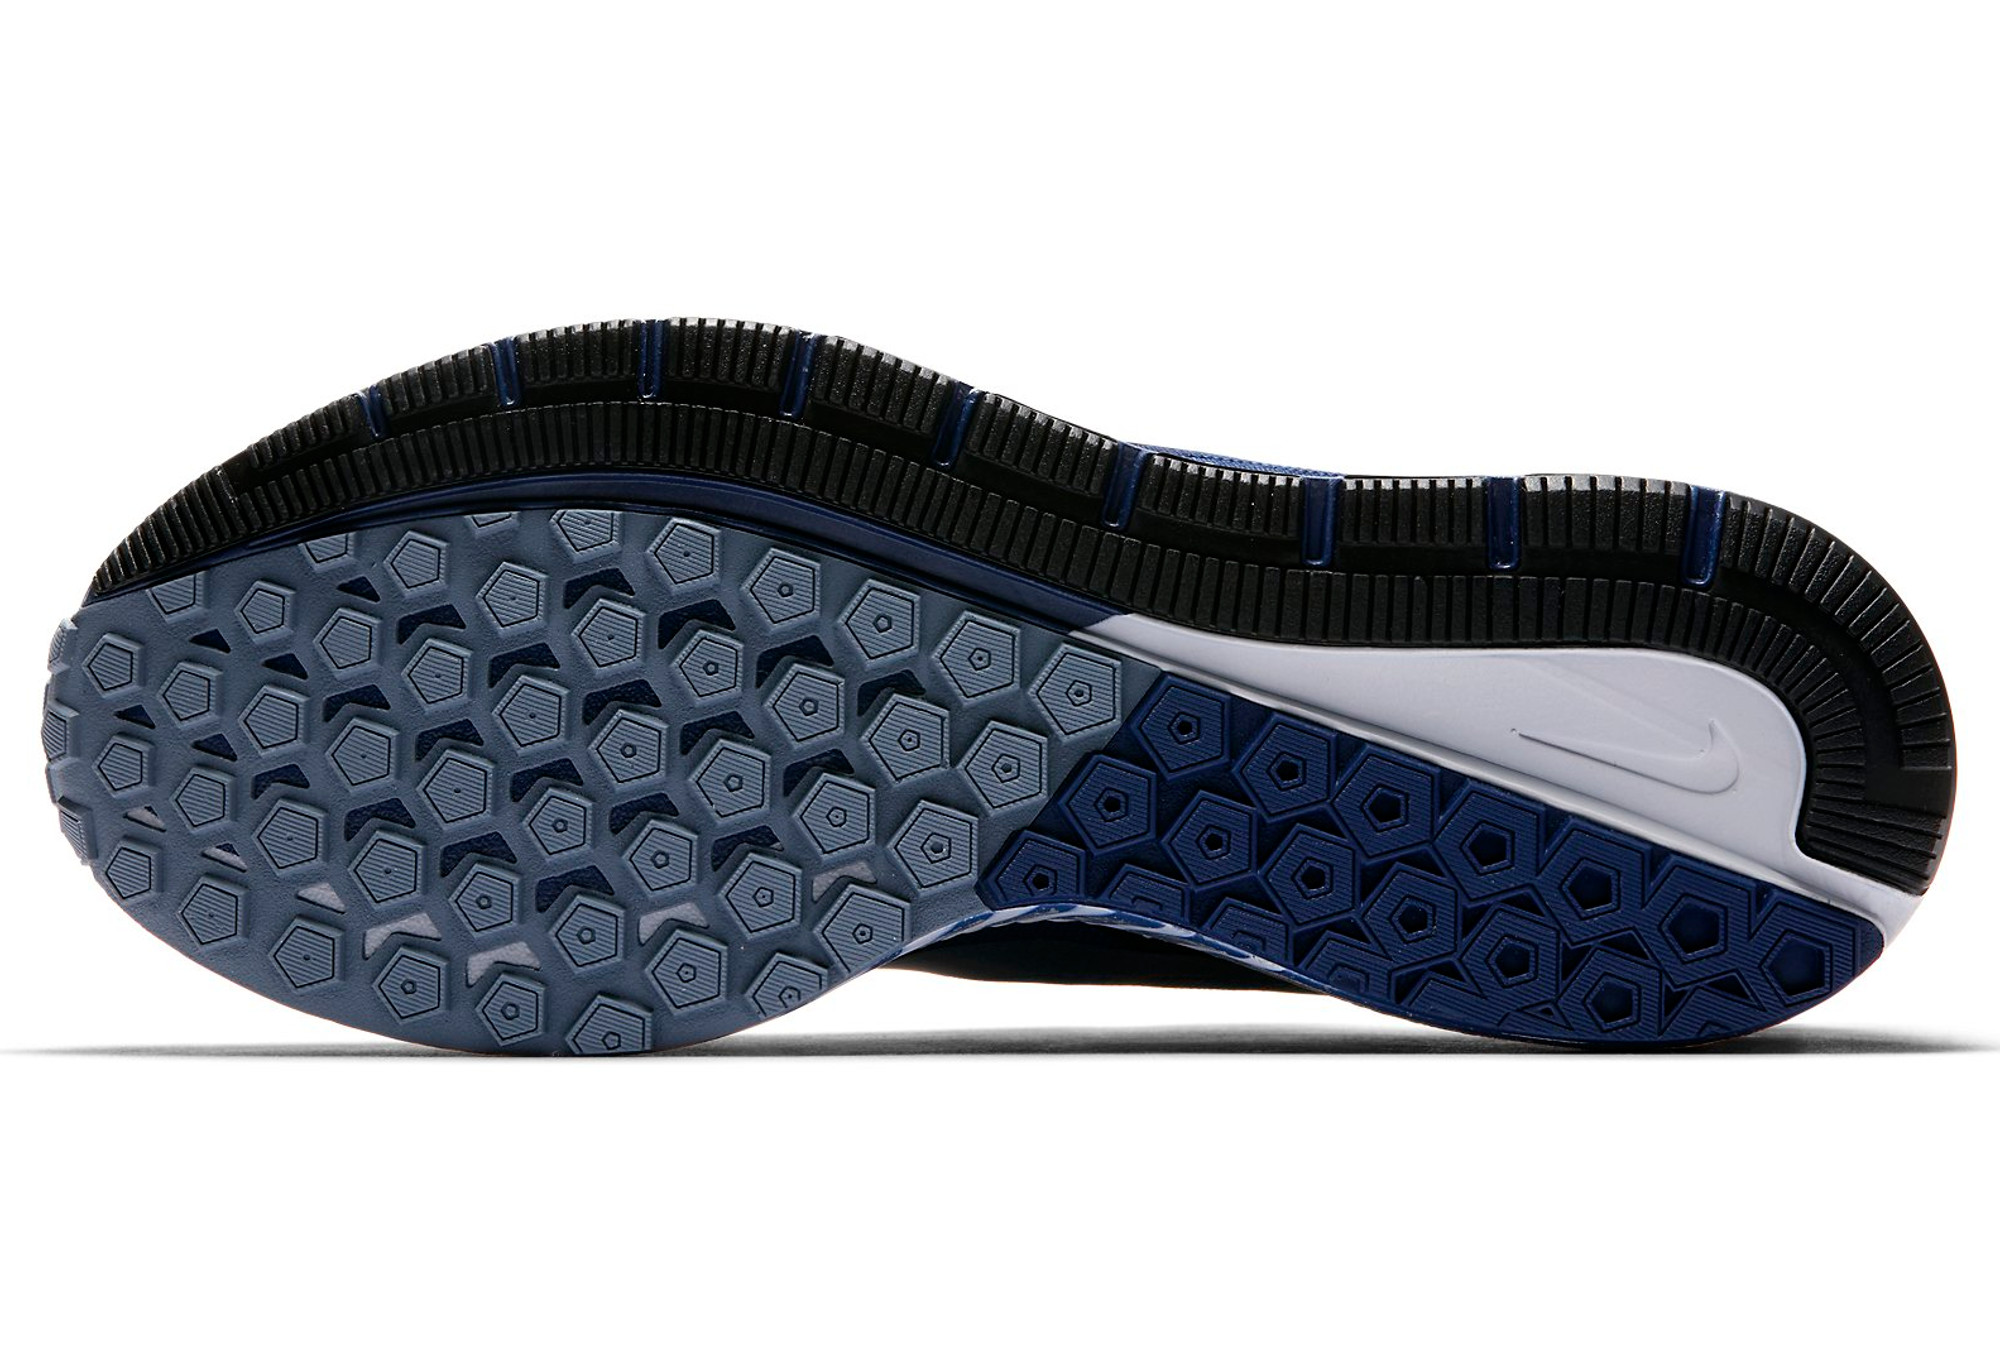 official photos 346fc 51897 Nike Air Zoom Structure 21 Shield Blue Men